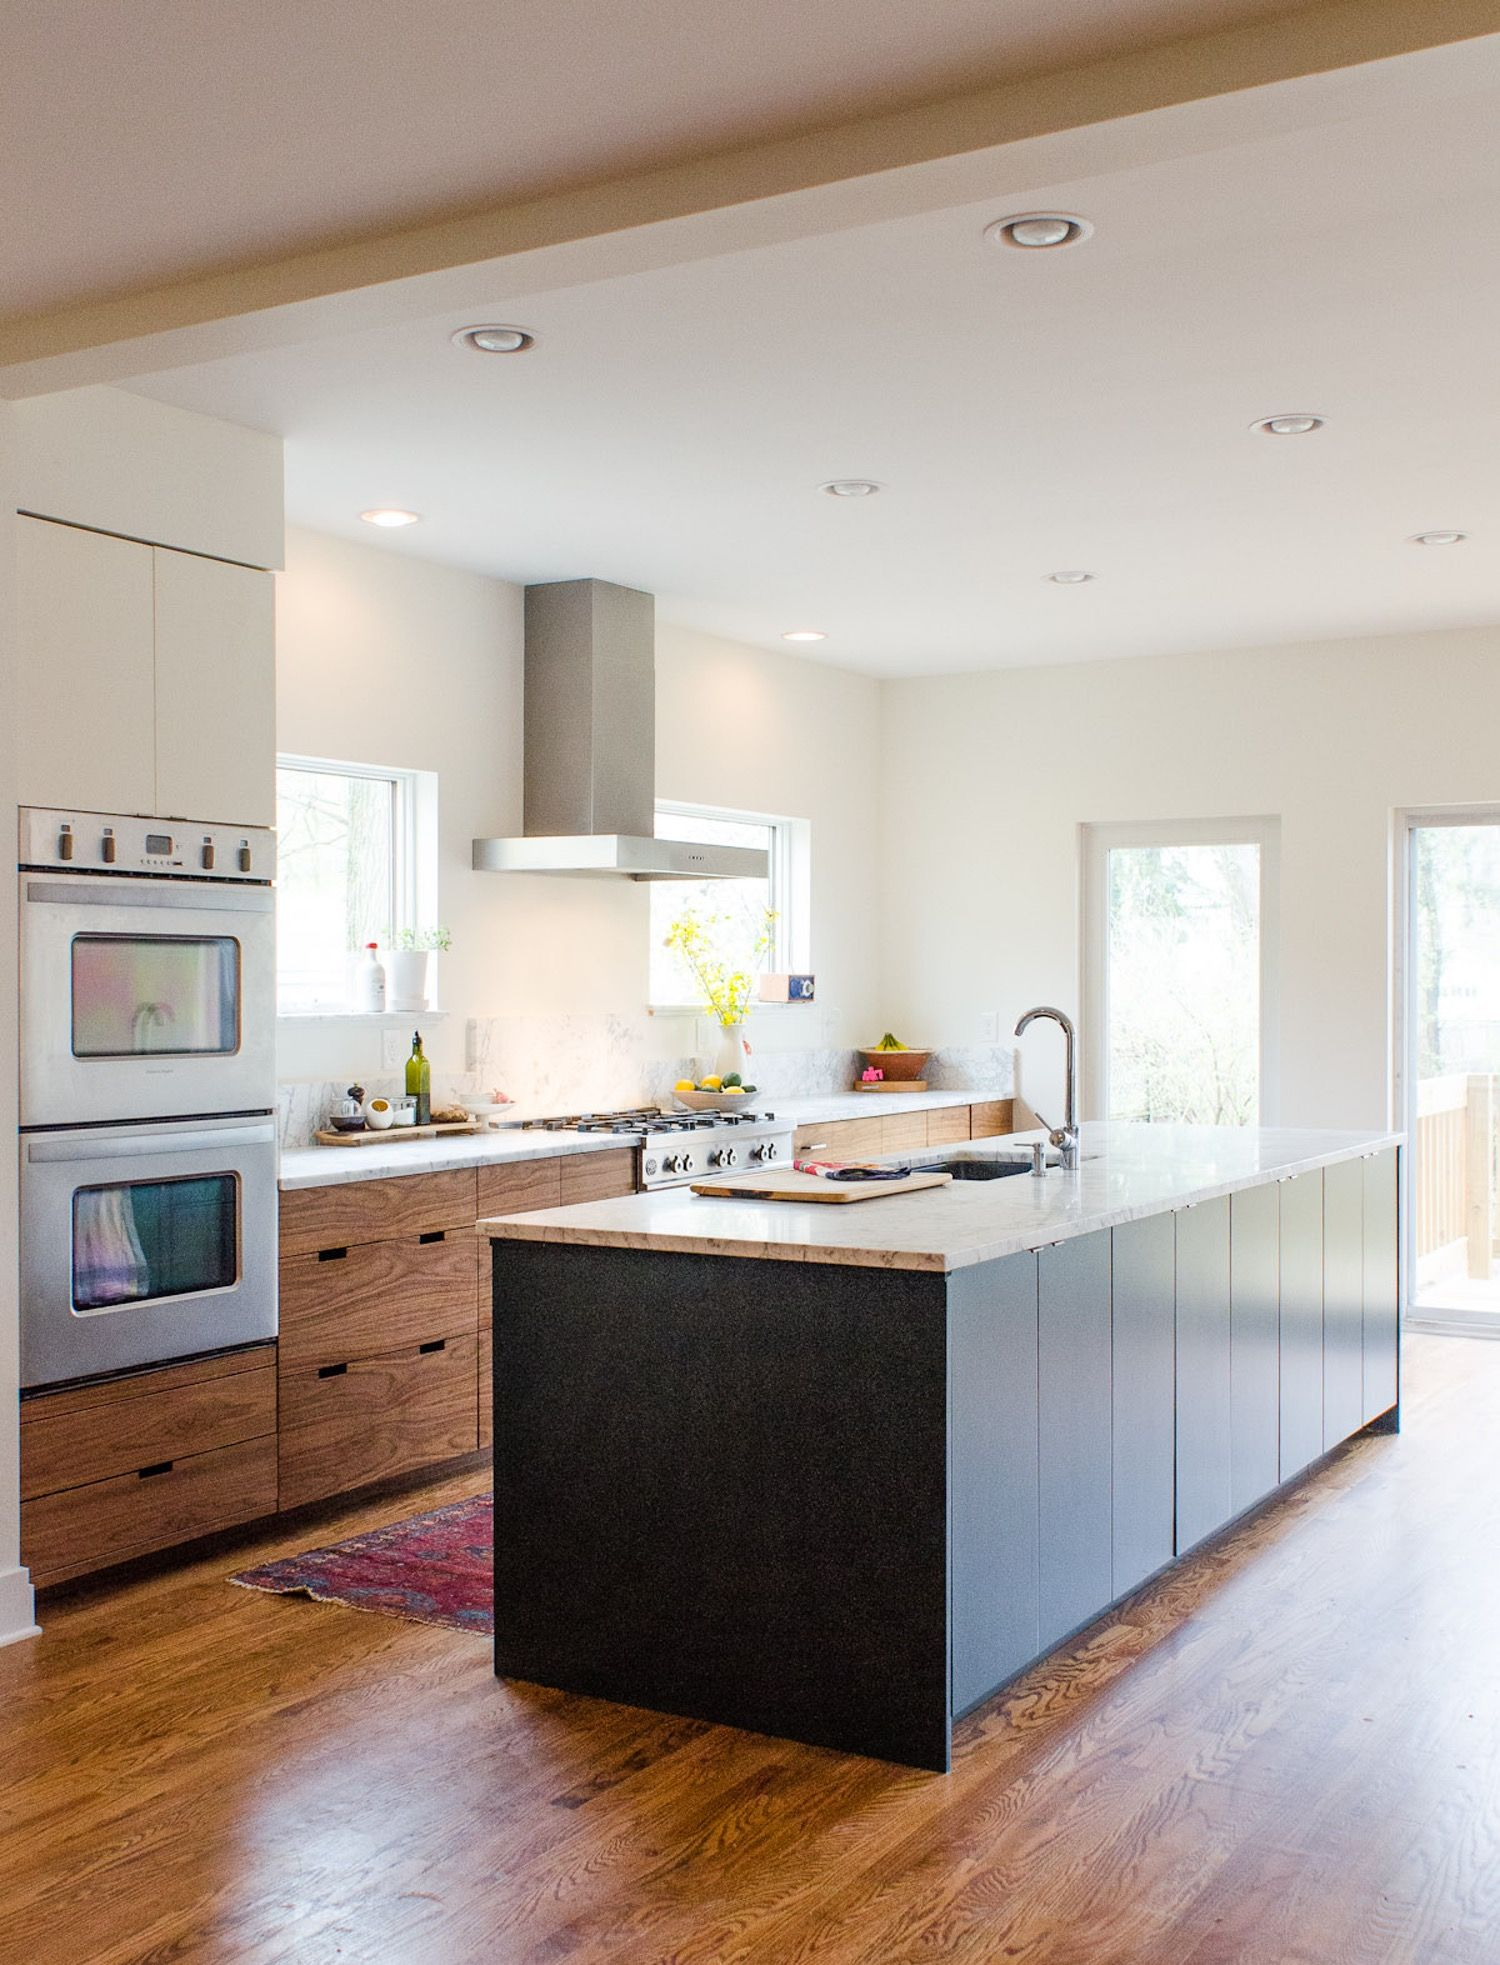 Ikea Kitchen Cabinets Pros Cons Real Life Owner Reviews Kitchen Renovation Ikea Kitchen Cabinets Ikea Kitchen